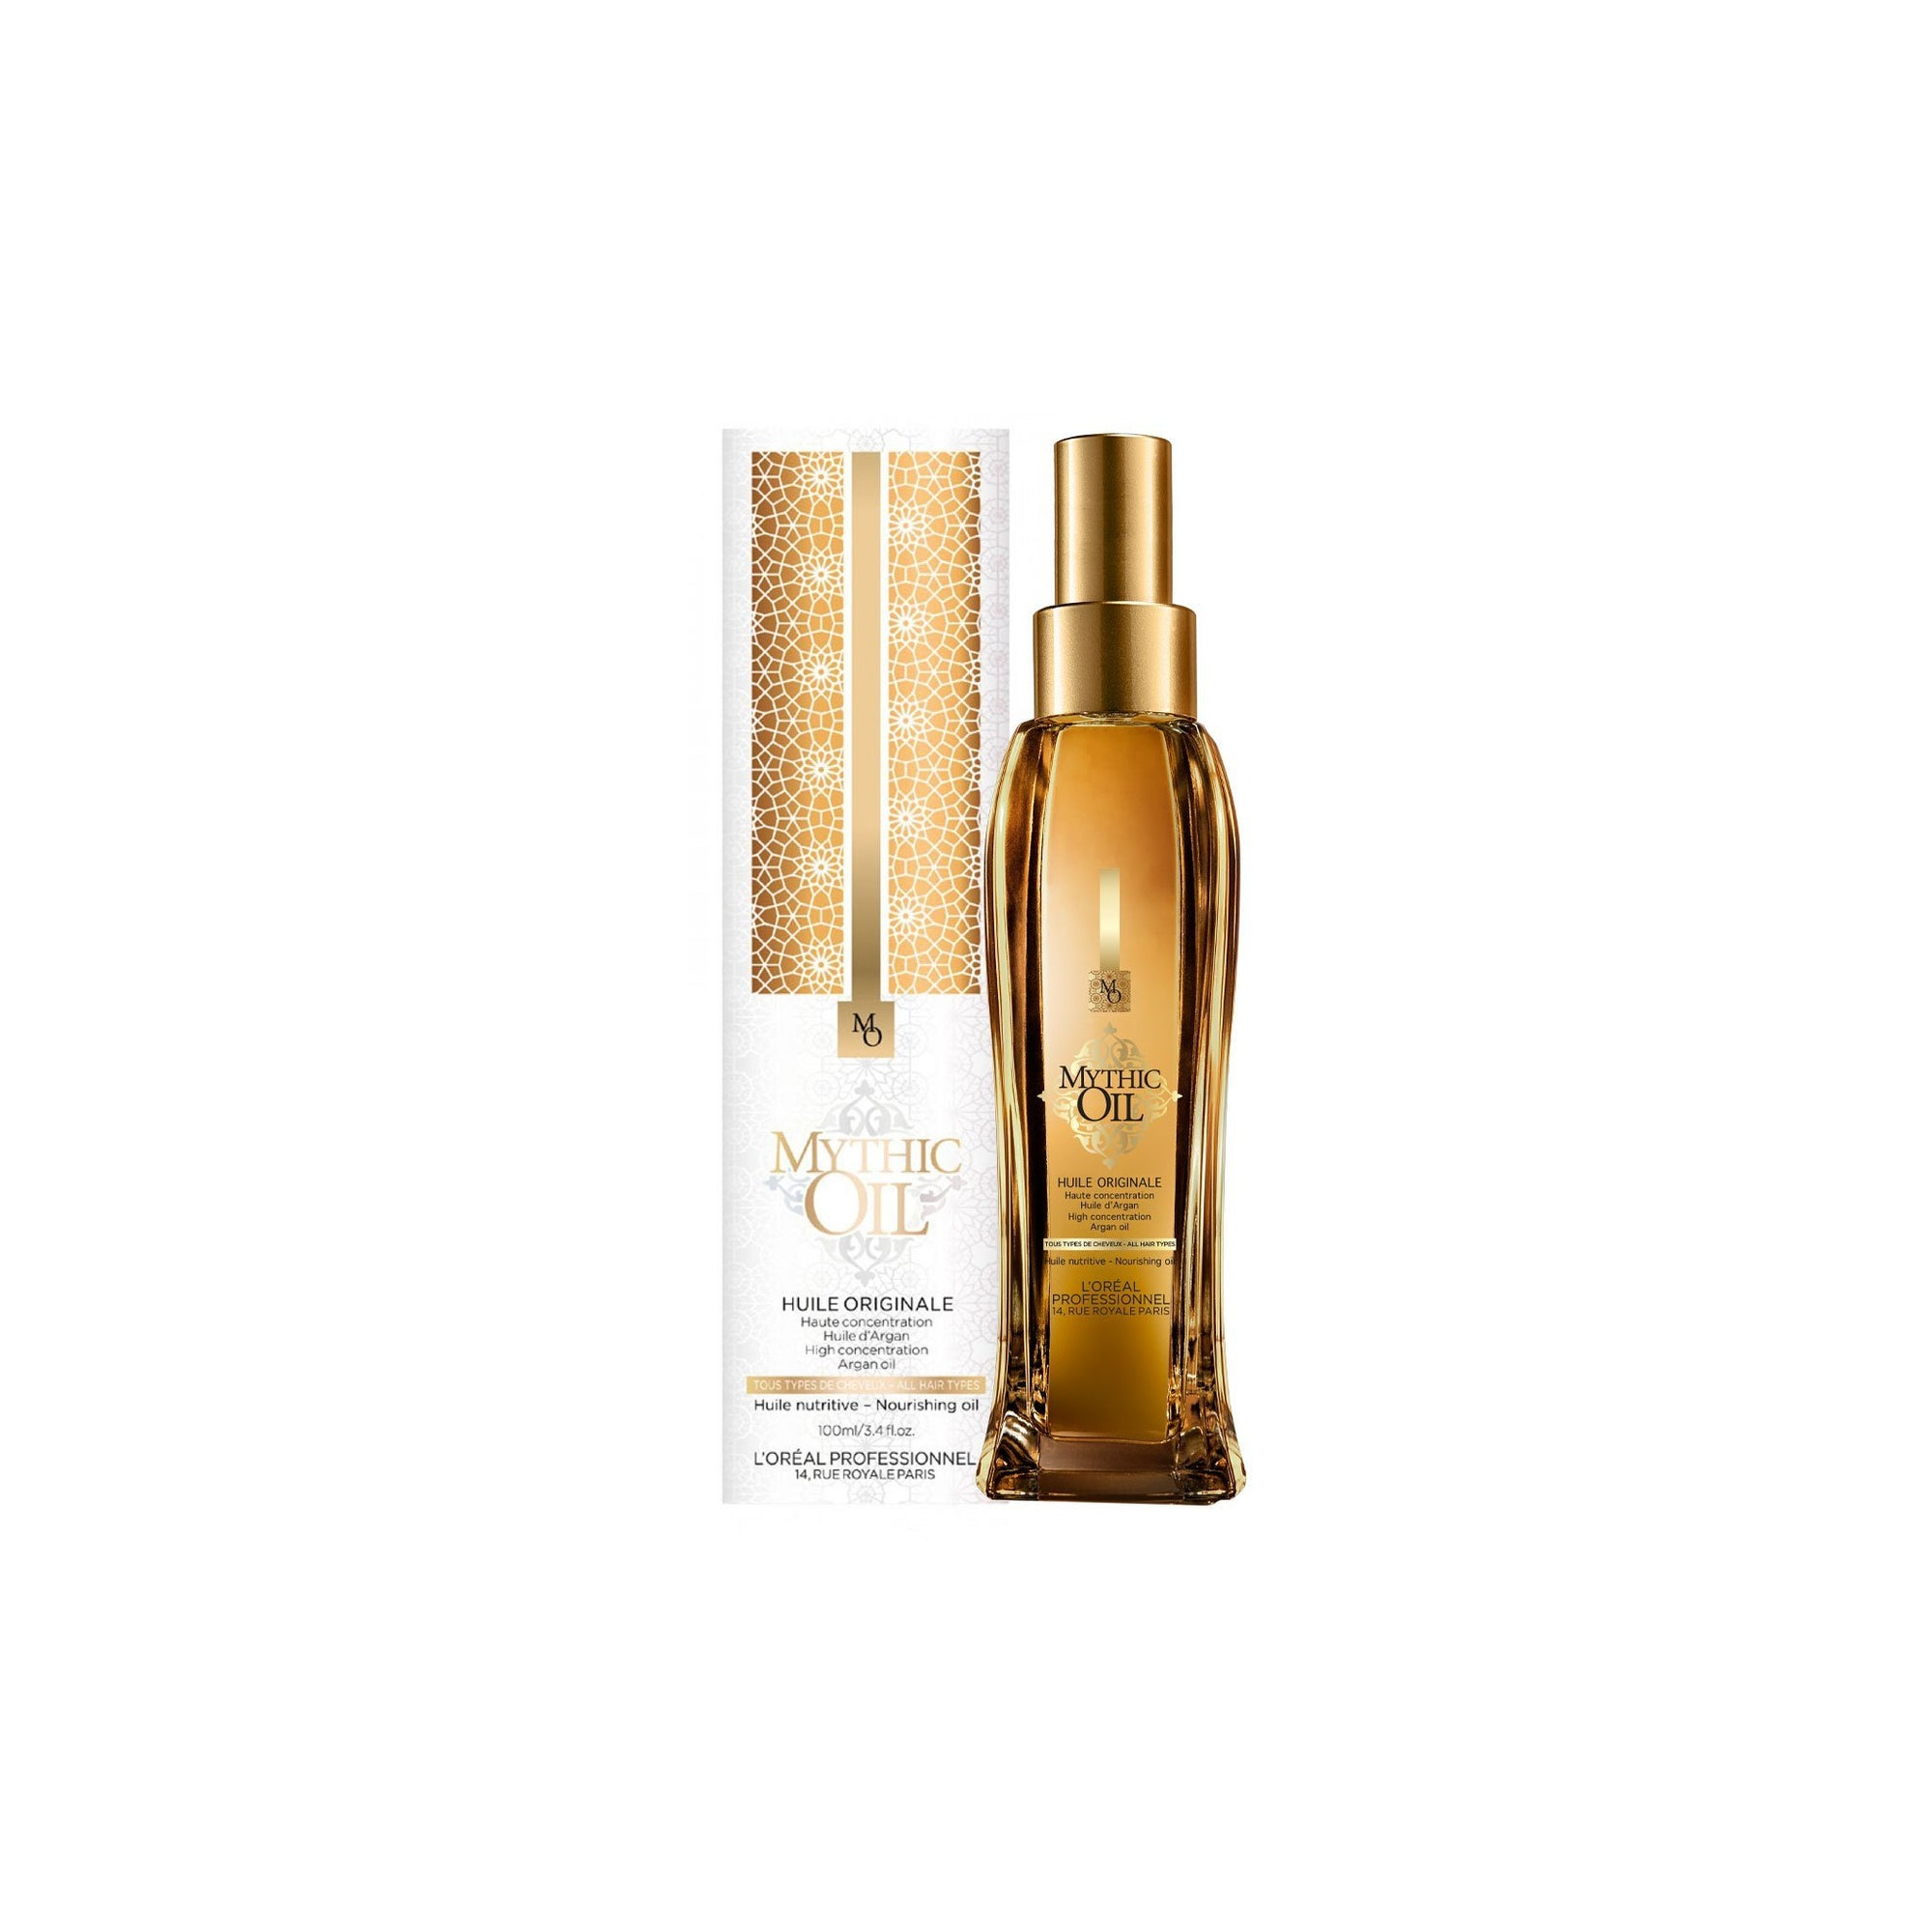 L'Oreal Mythic Oil 100ml